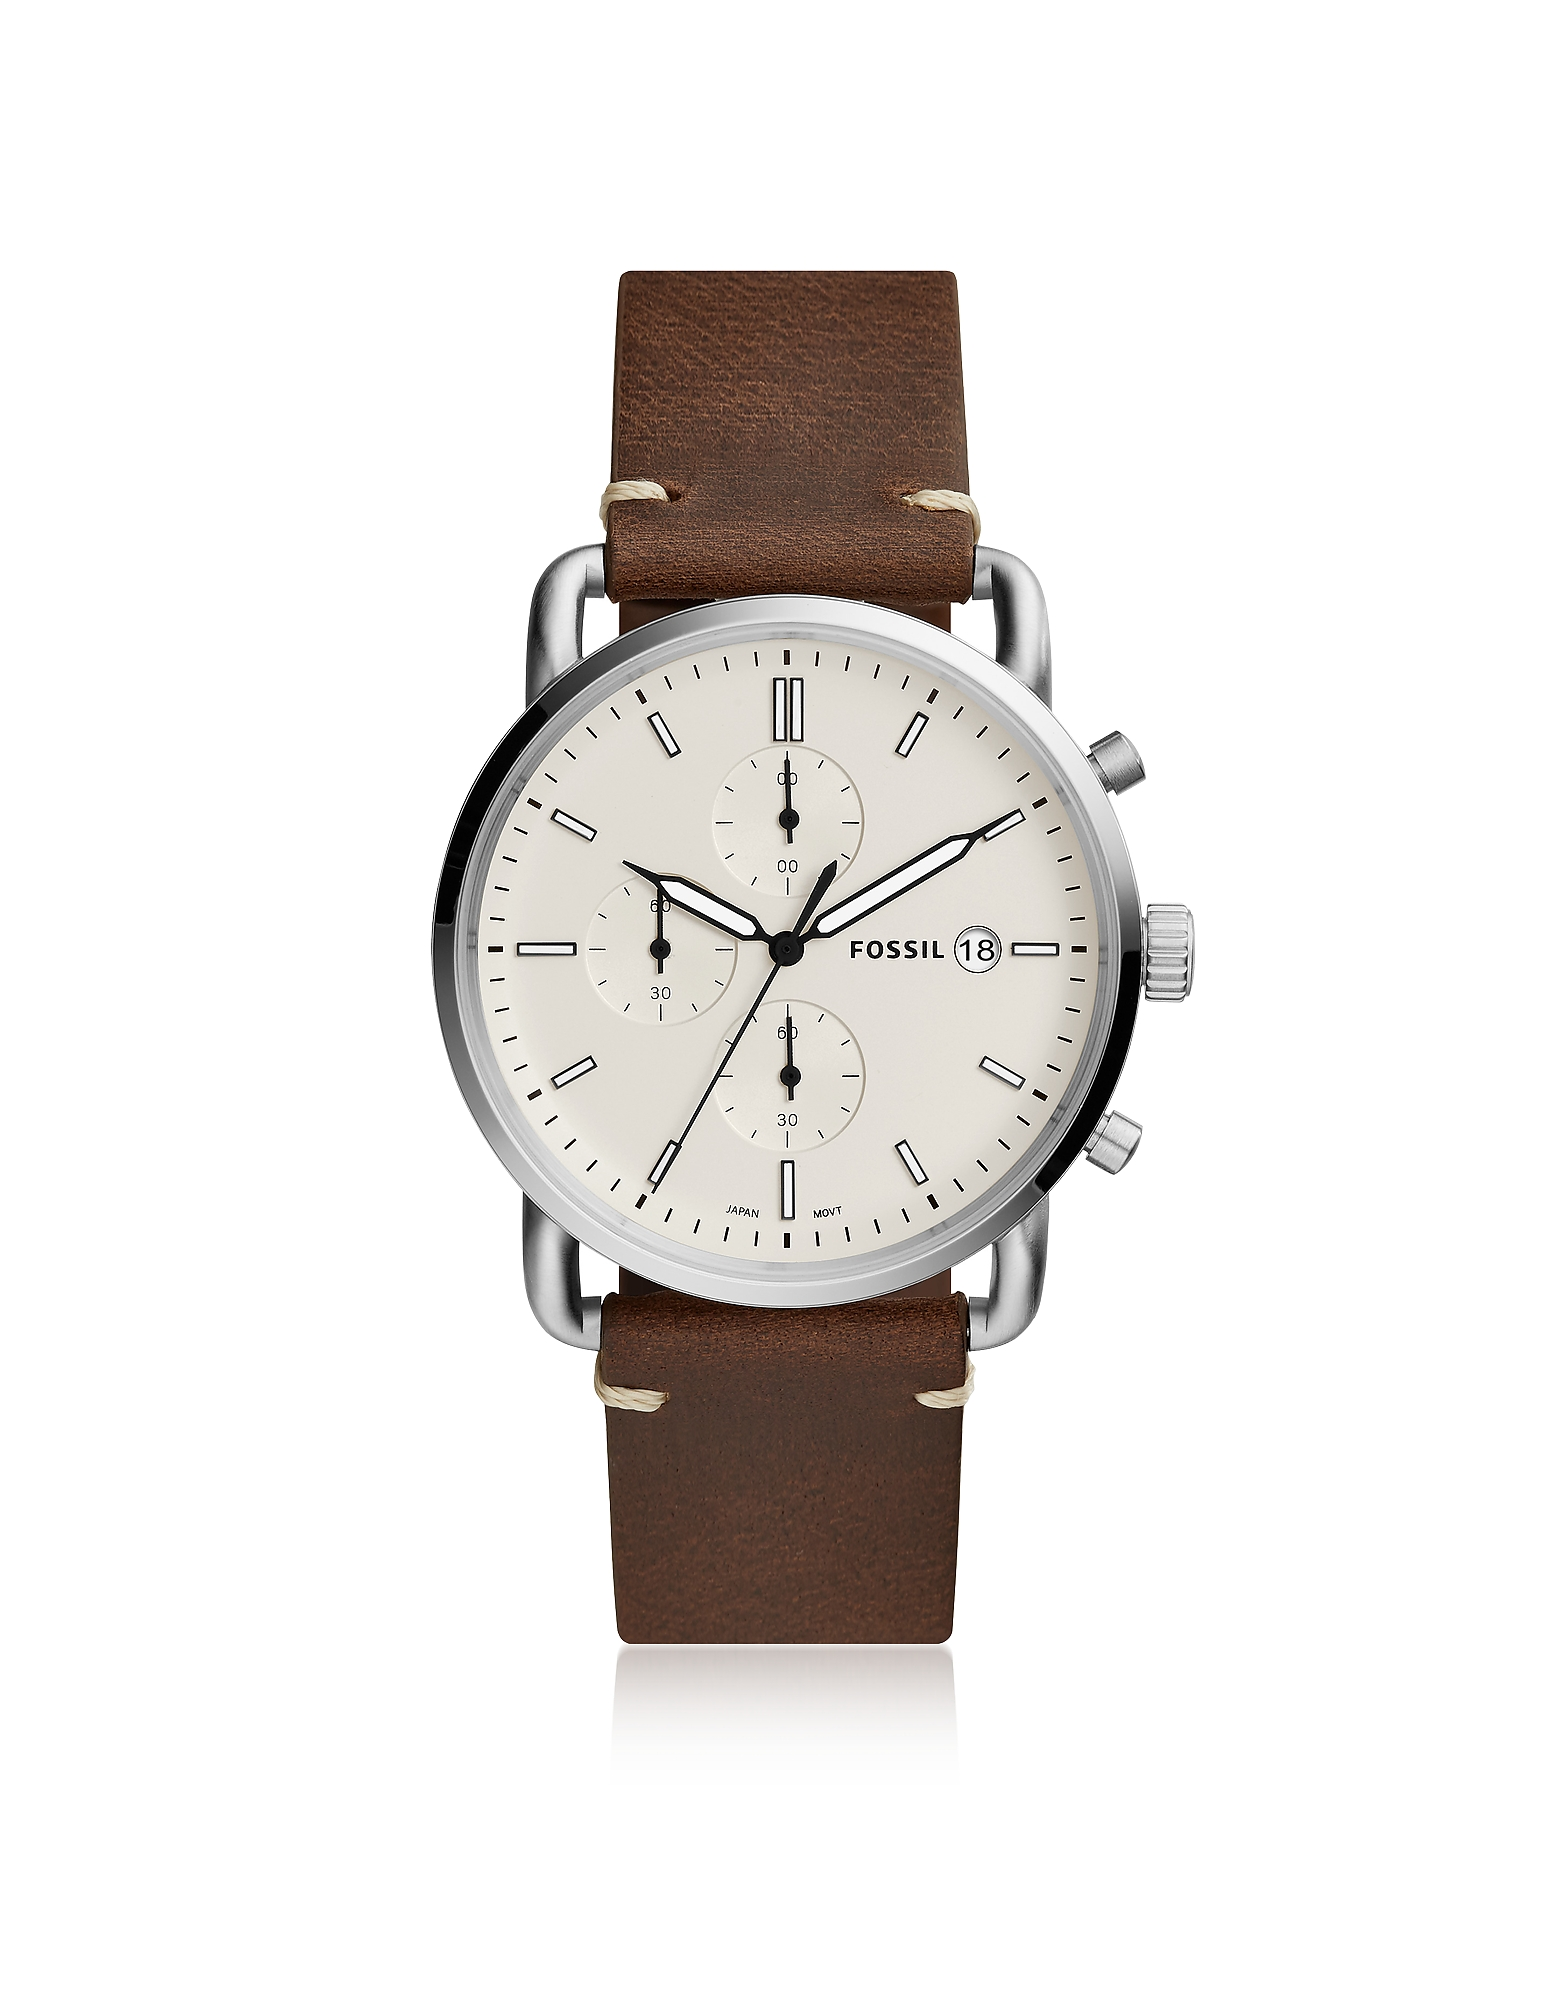 Fossil Men's Watches, The Commuter Chronograph Brown Leather and Cream Dial Men's Watch